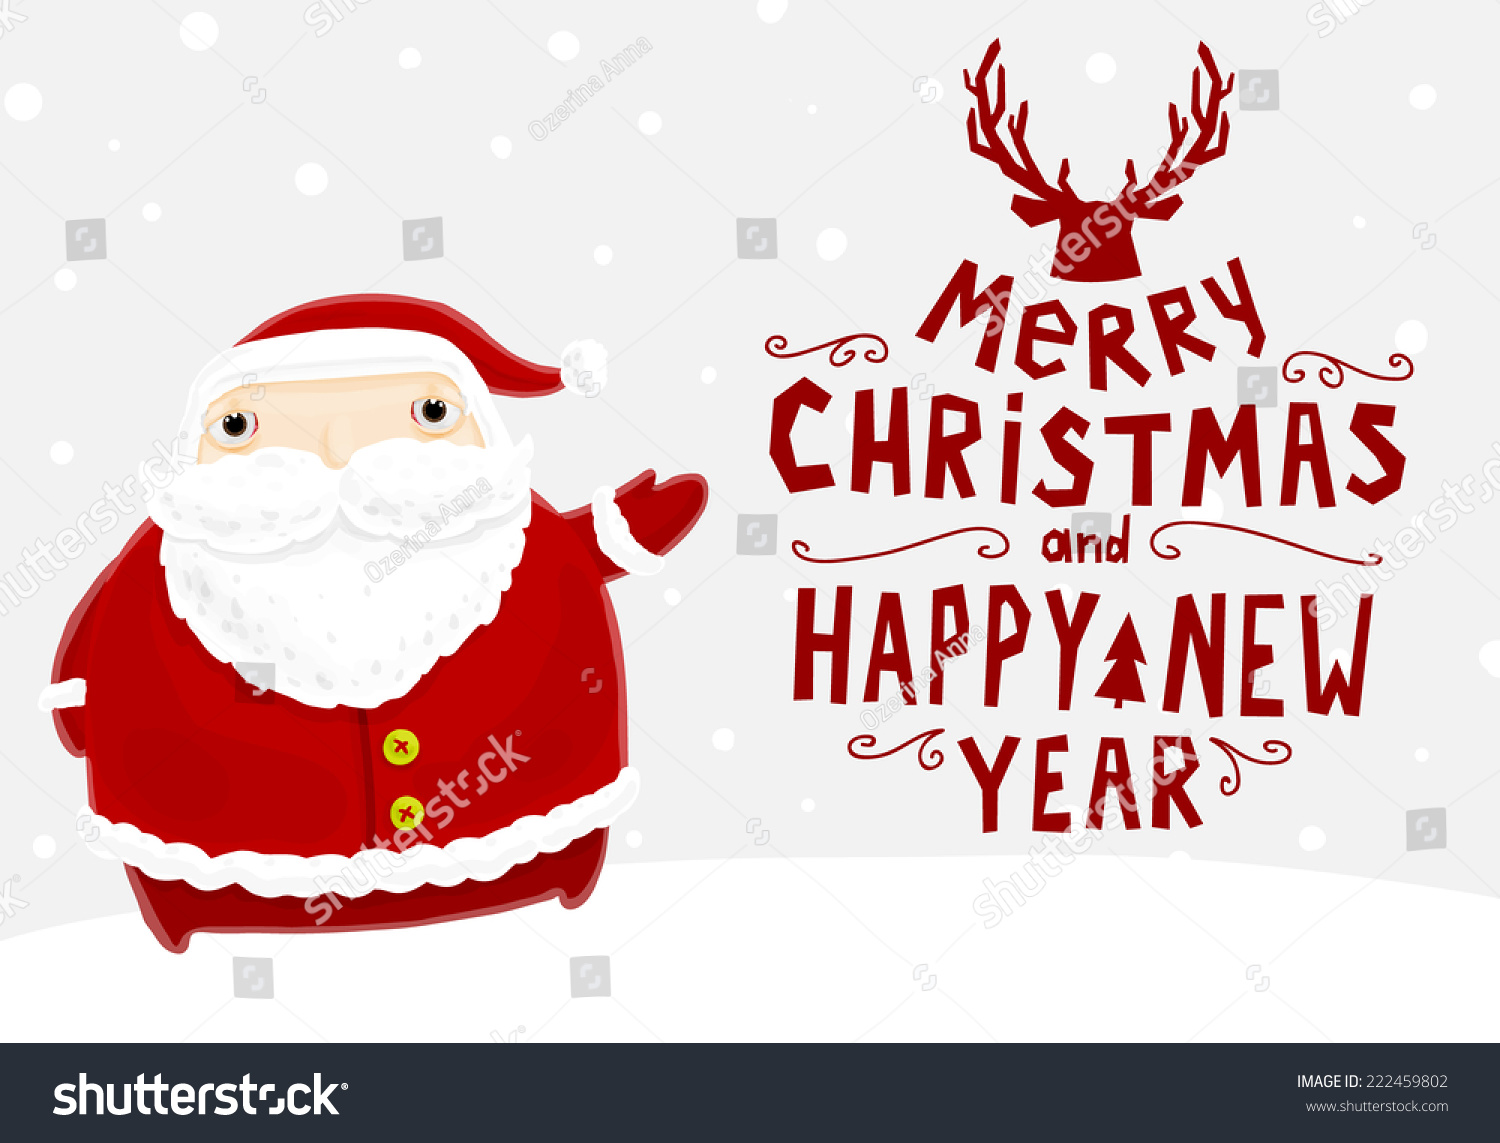 santa claus merry christmas label holiday stock vector  santa claus merry christmas label for holiday invitations and greeting cards xmas poster